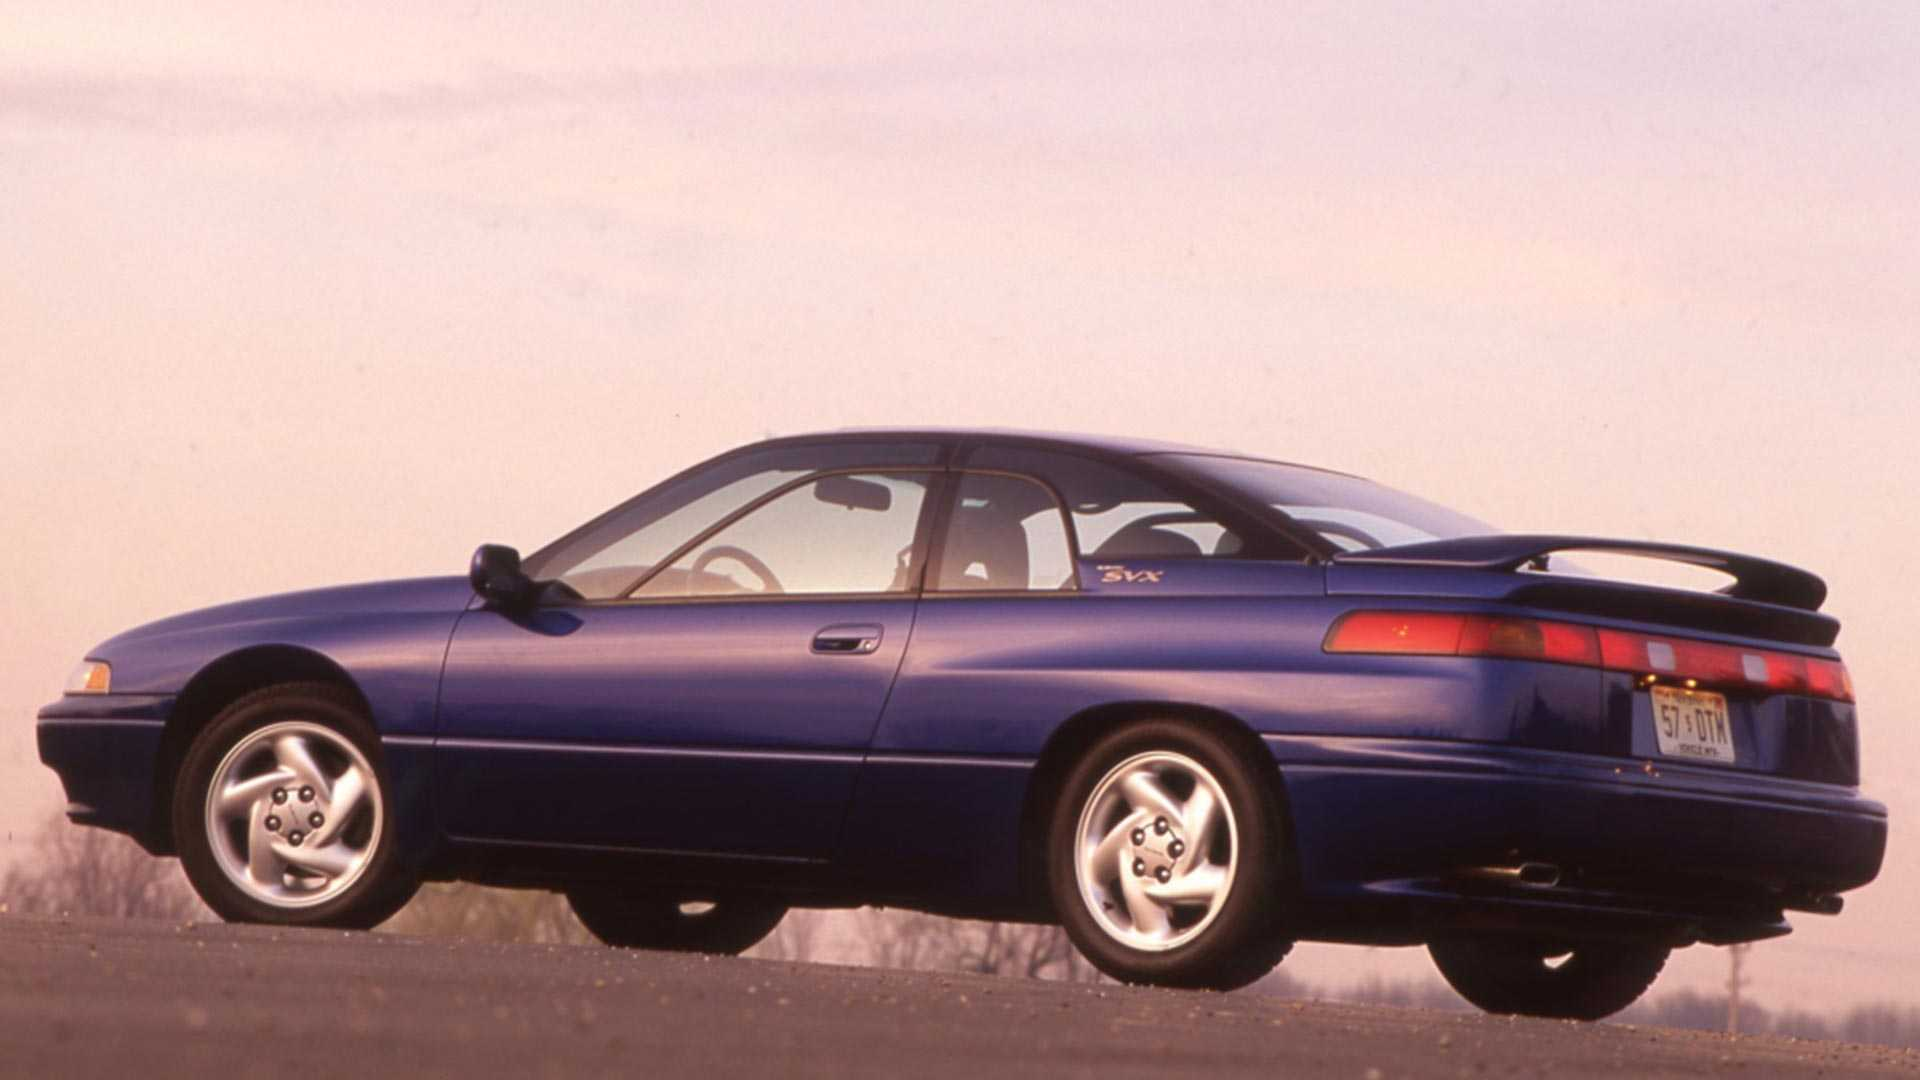 Subaru Svx S Controversial Design Rendered For The Modern